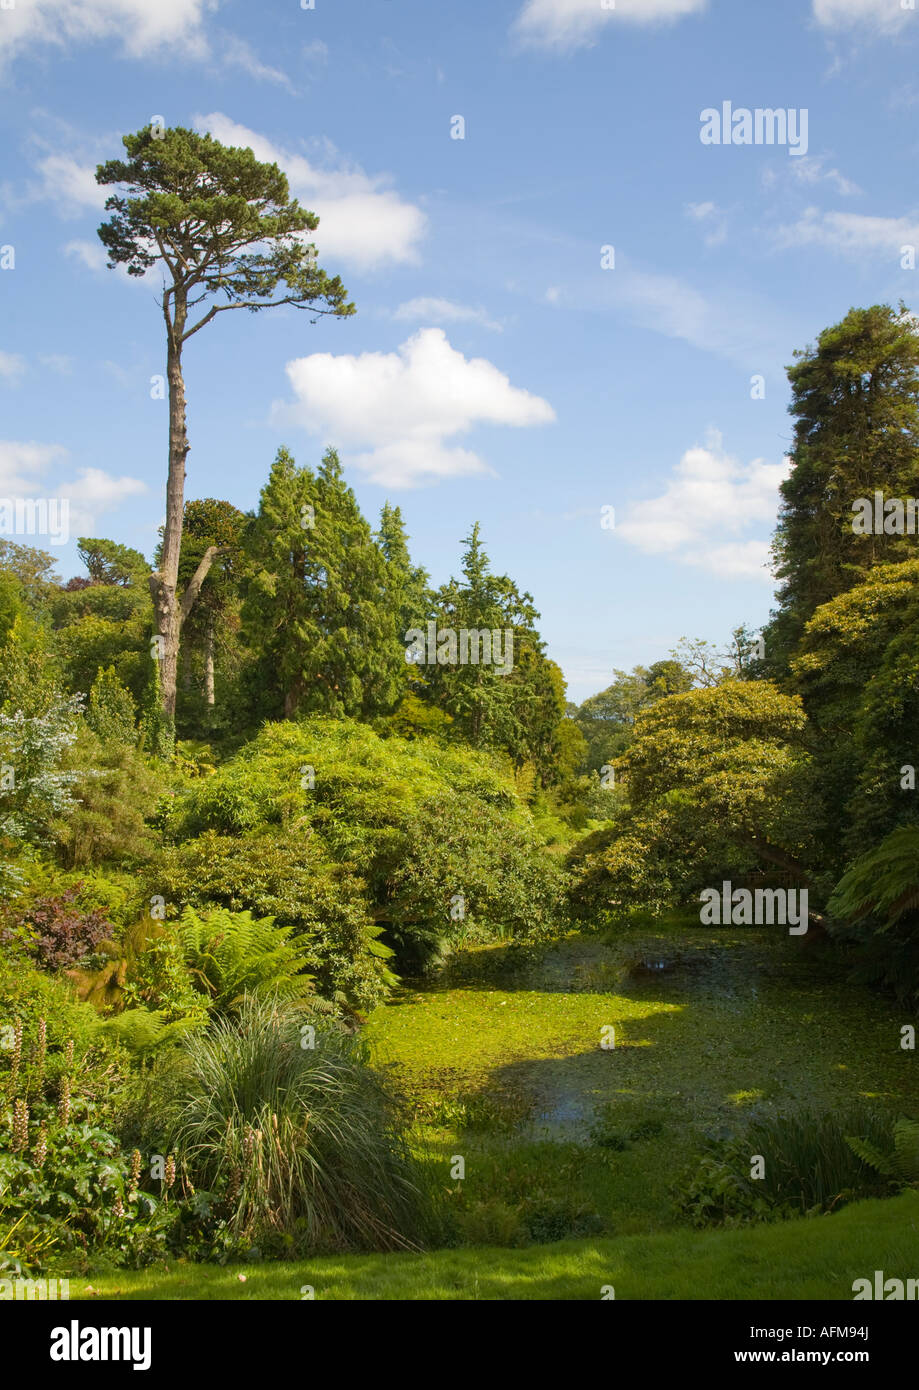 The gardens, created mainly in the 19th century, of were one of the finest gardens in England of their period, with - Stock Image